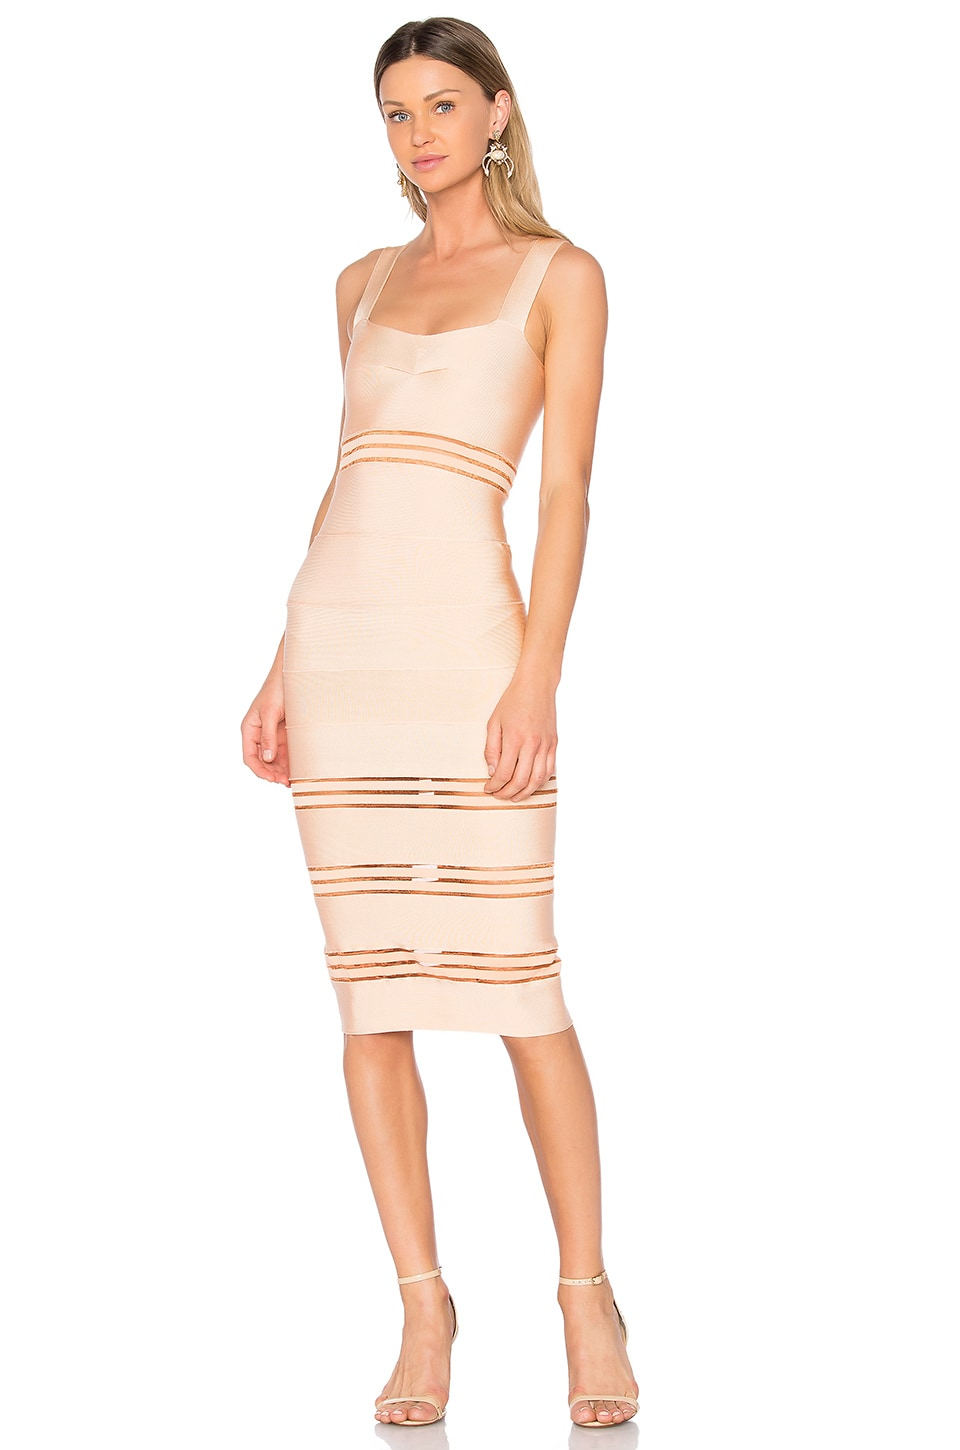 LOLITTA Sophie Midi Dress in Creme